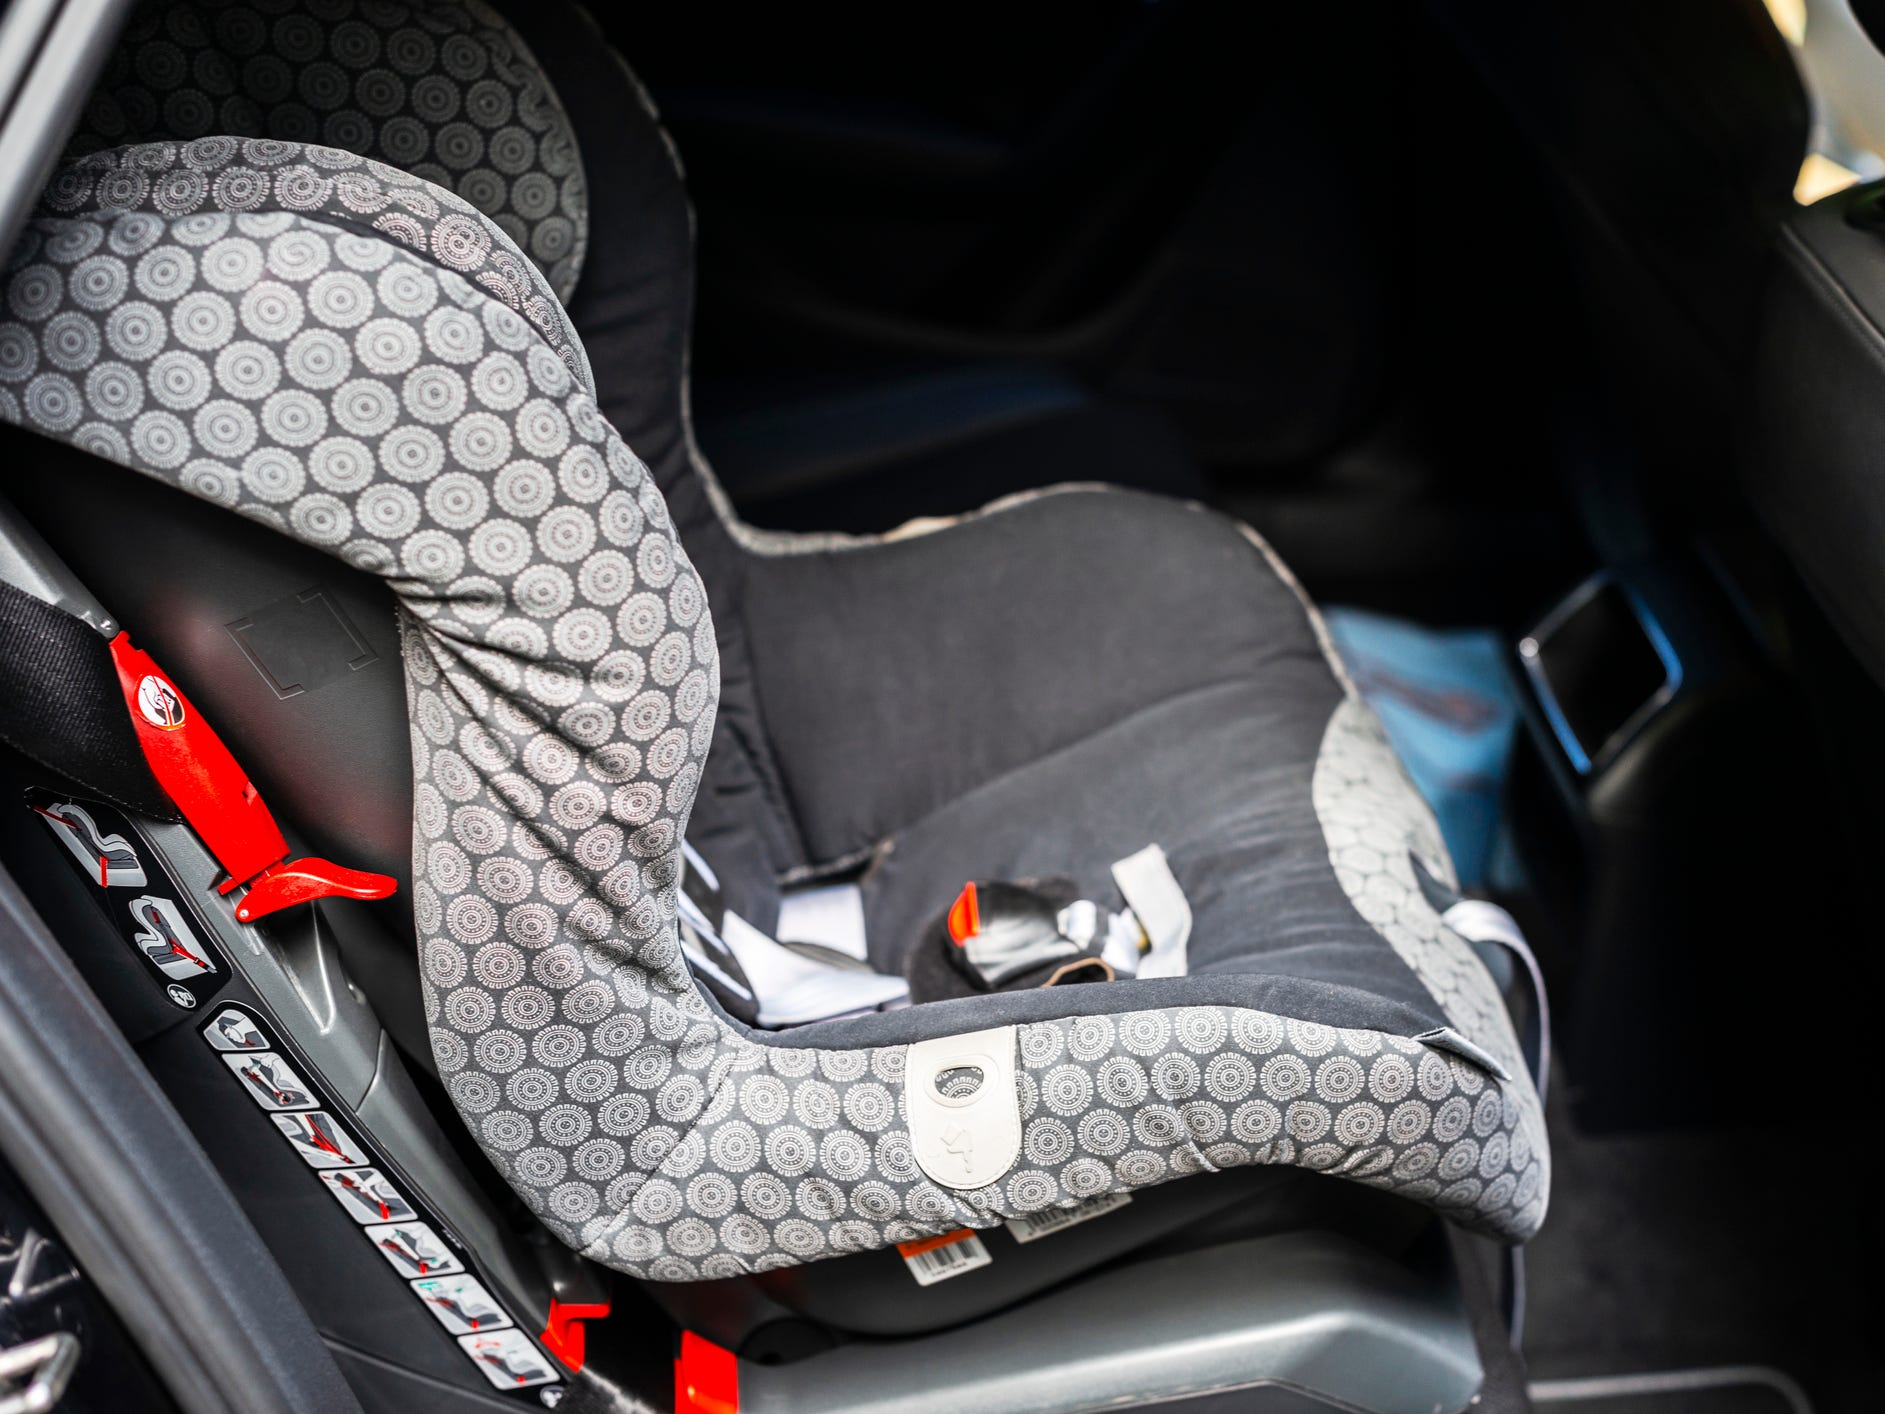 Child safety seat in the back of the car. Baby car seat for safety. Car interior. Car detailing